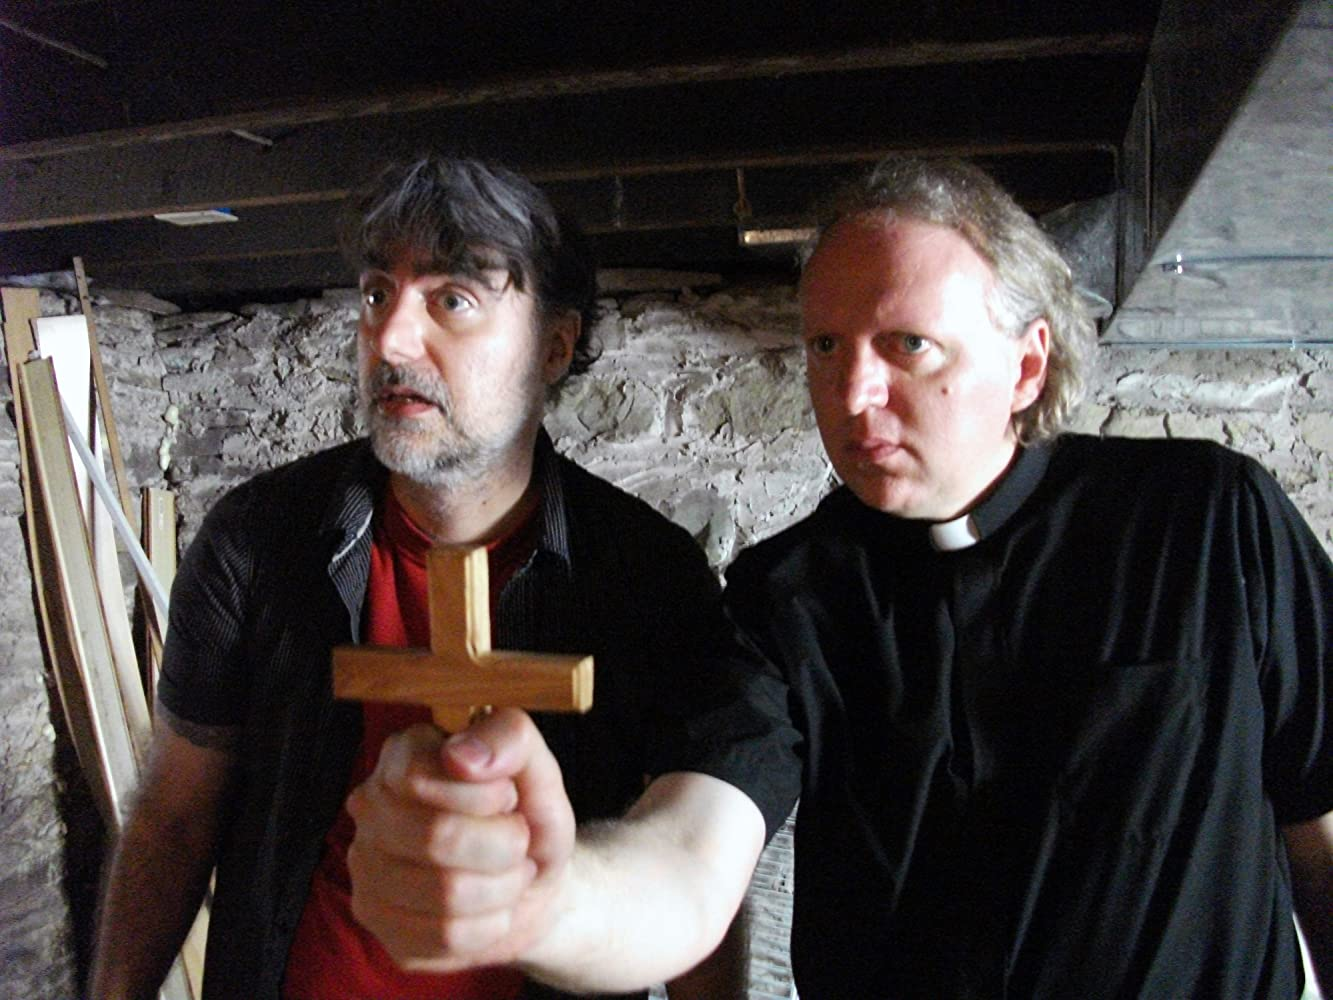 (l to r) James Carolus and priest Jeff Kirkendall perform an exorcism in Amityville Exorcism (2017)